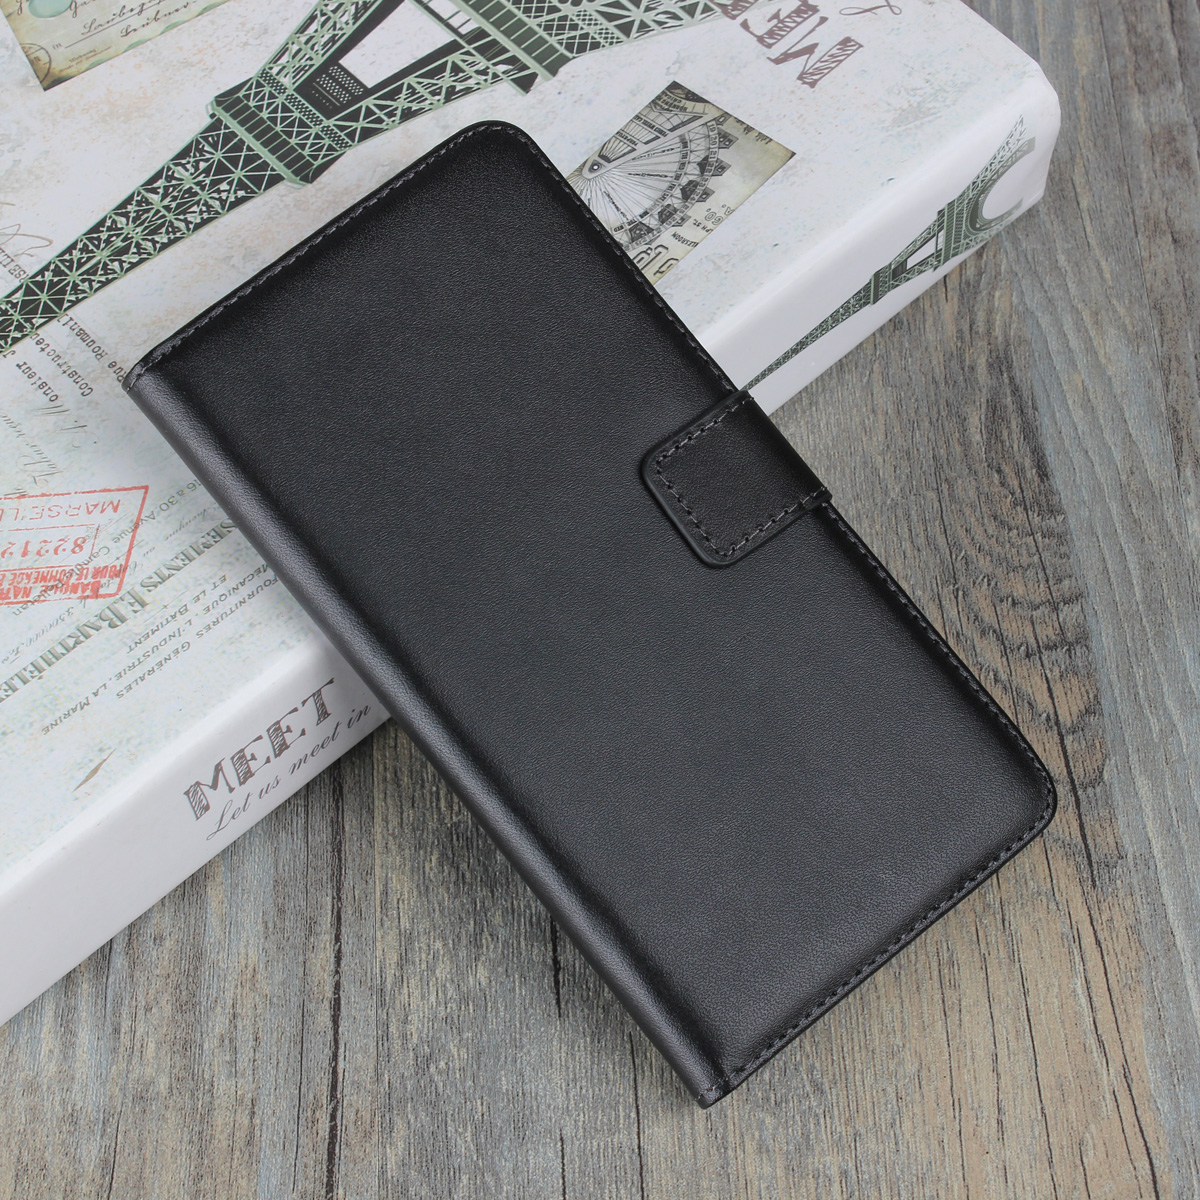 High quality Retro leather phone case wallet flip cover Card holder cover case for Samsung Galaxy S3 S4 S5 i9300 i9500 i9600 GG